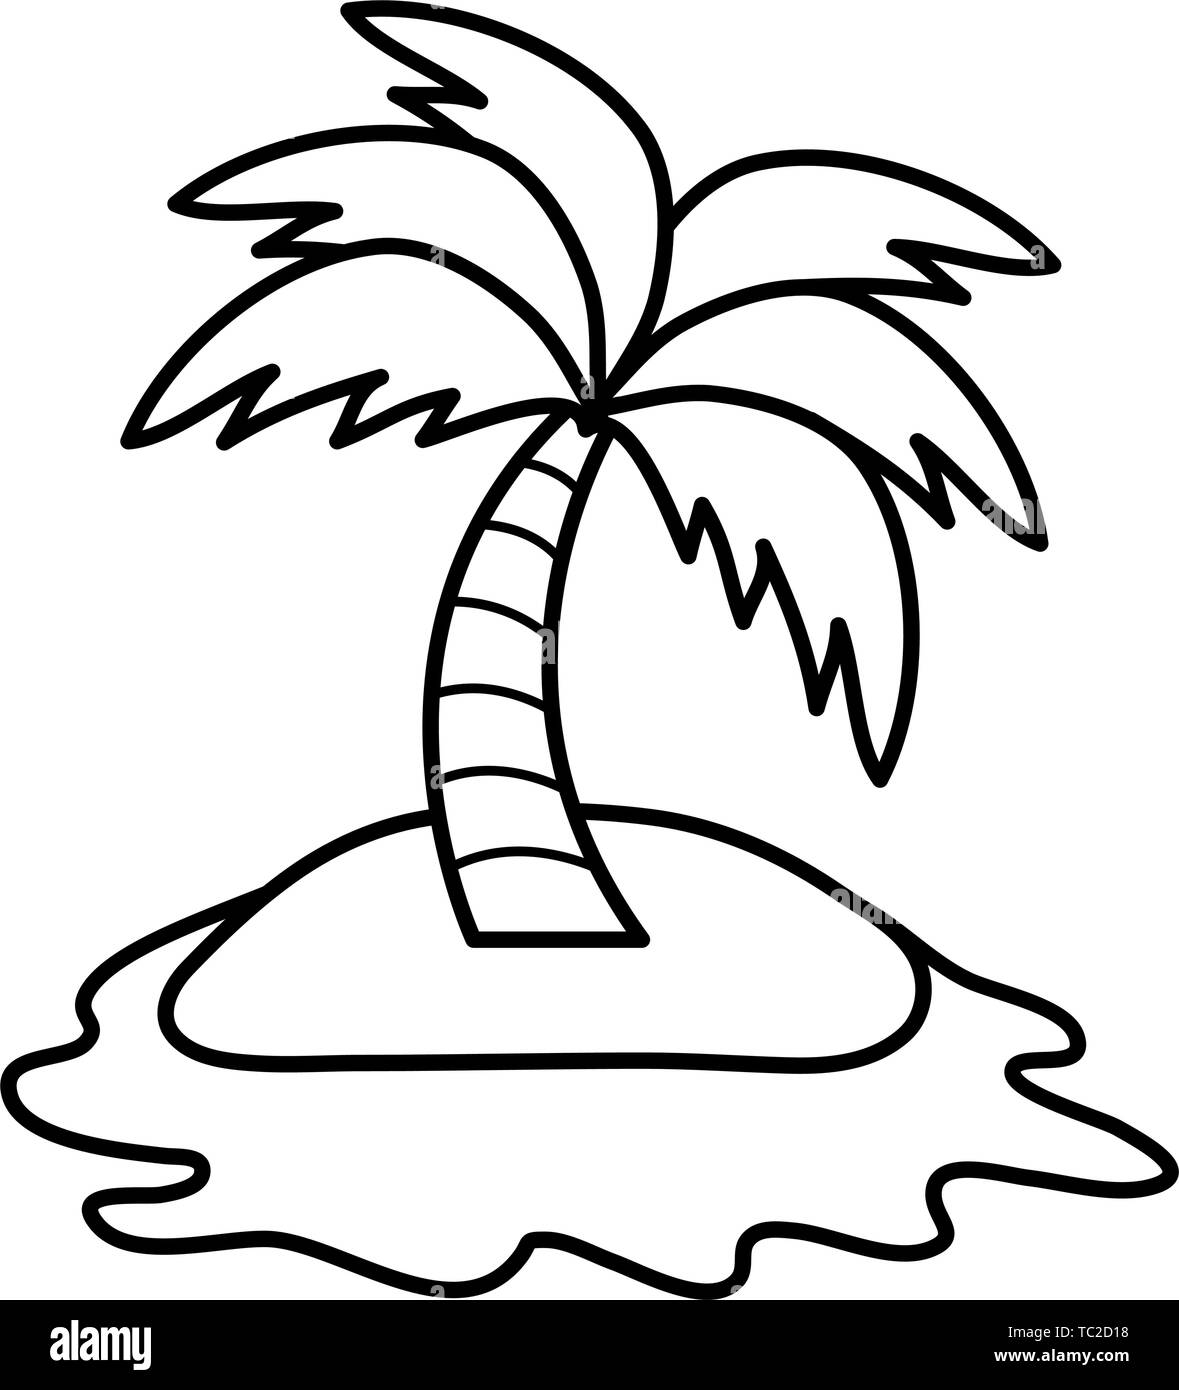 tree palm beach in island summer icon vector illustration design stock vector image art alamy https www alamy com tree palm beach in island summer icon vector illustration design image248375156 html